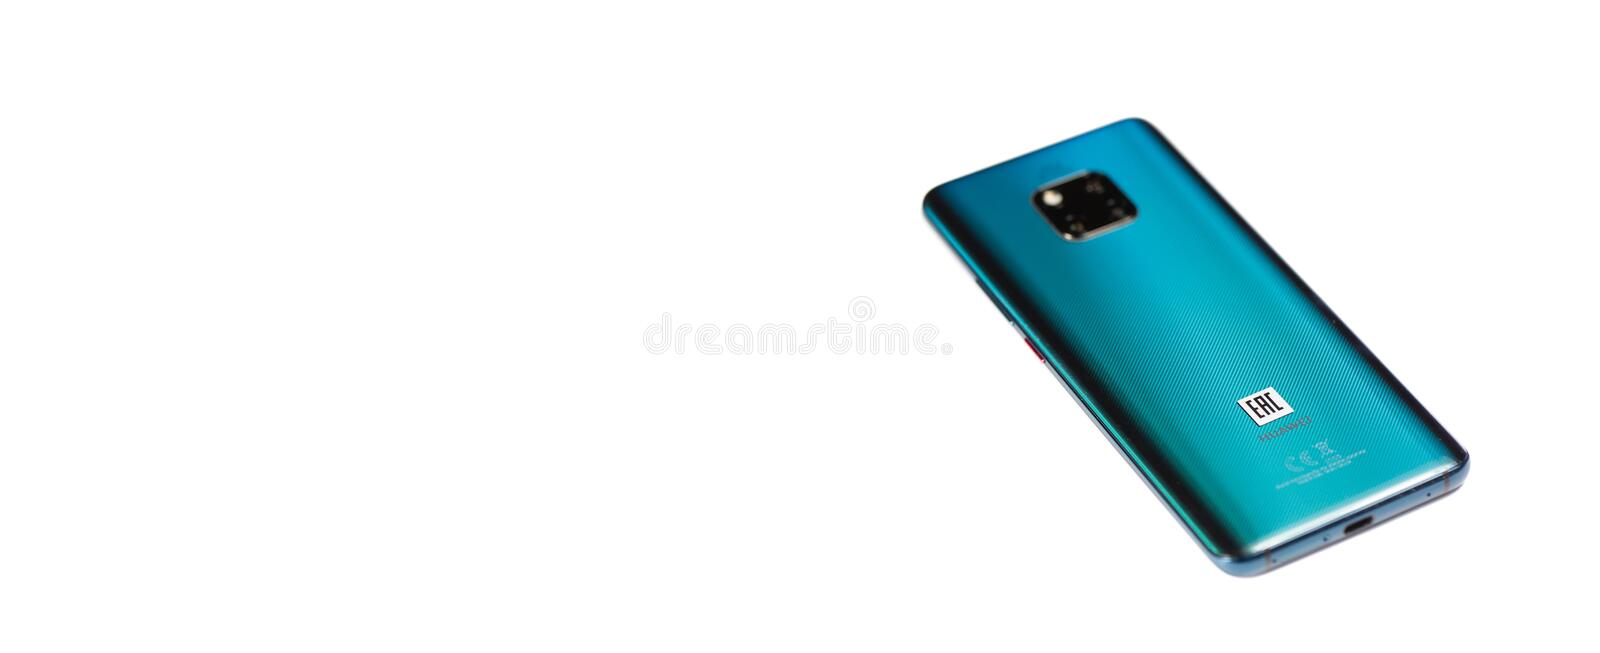 New smartphone from Huawei-Mate 20 Pro, Emerald Green, isolated on white background. Place for text stock photos